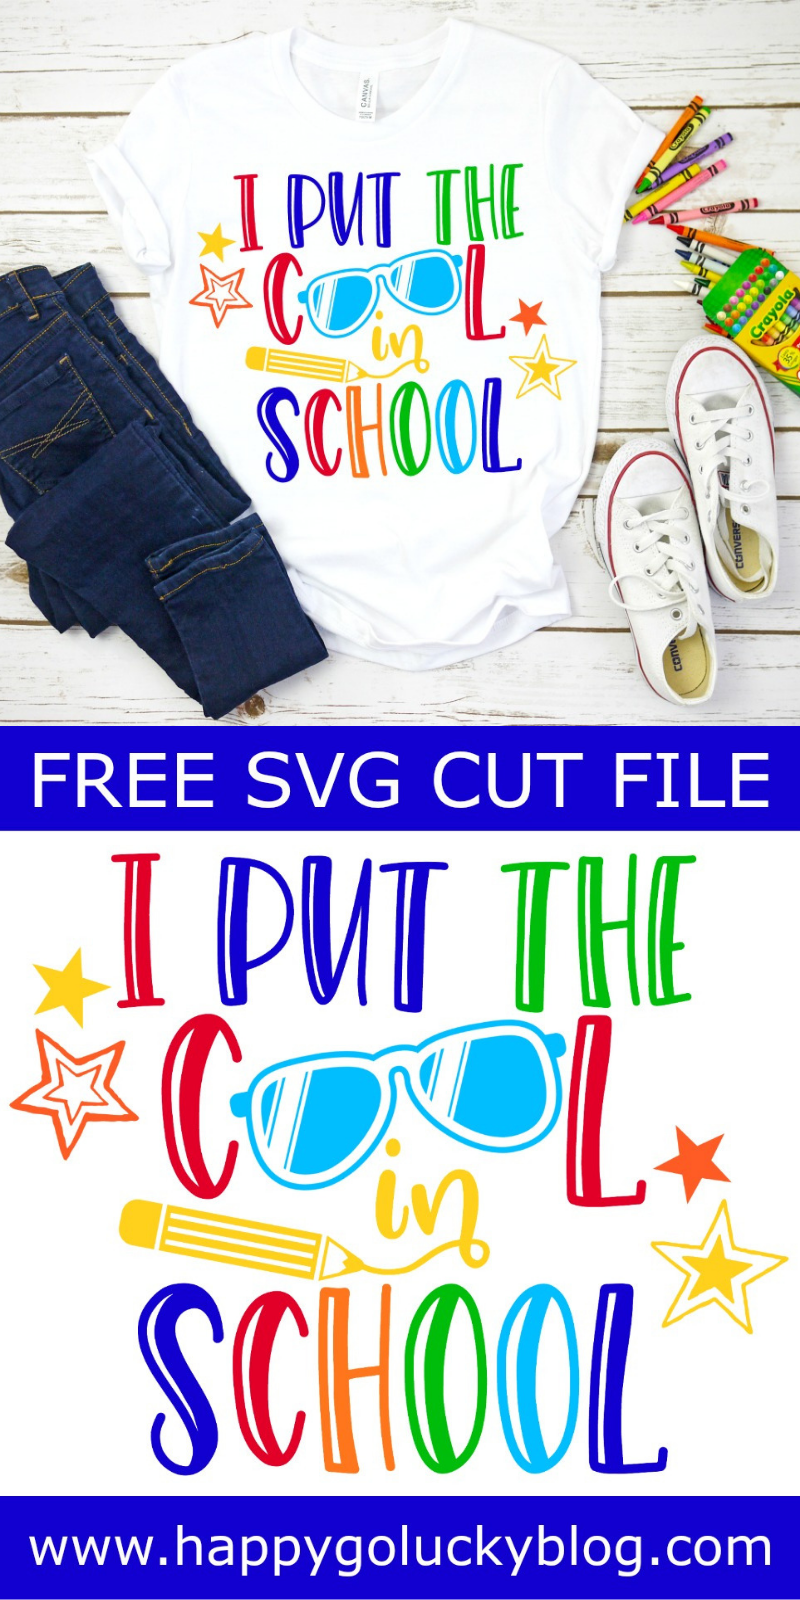 https://www.happygoluckyblog.com/wp-content/uploads/2019/08/Cut-Files-I-Put-the-Cool-in-School.png